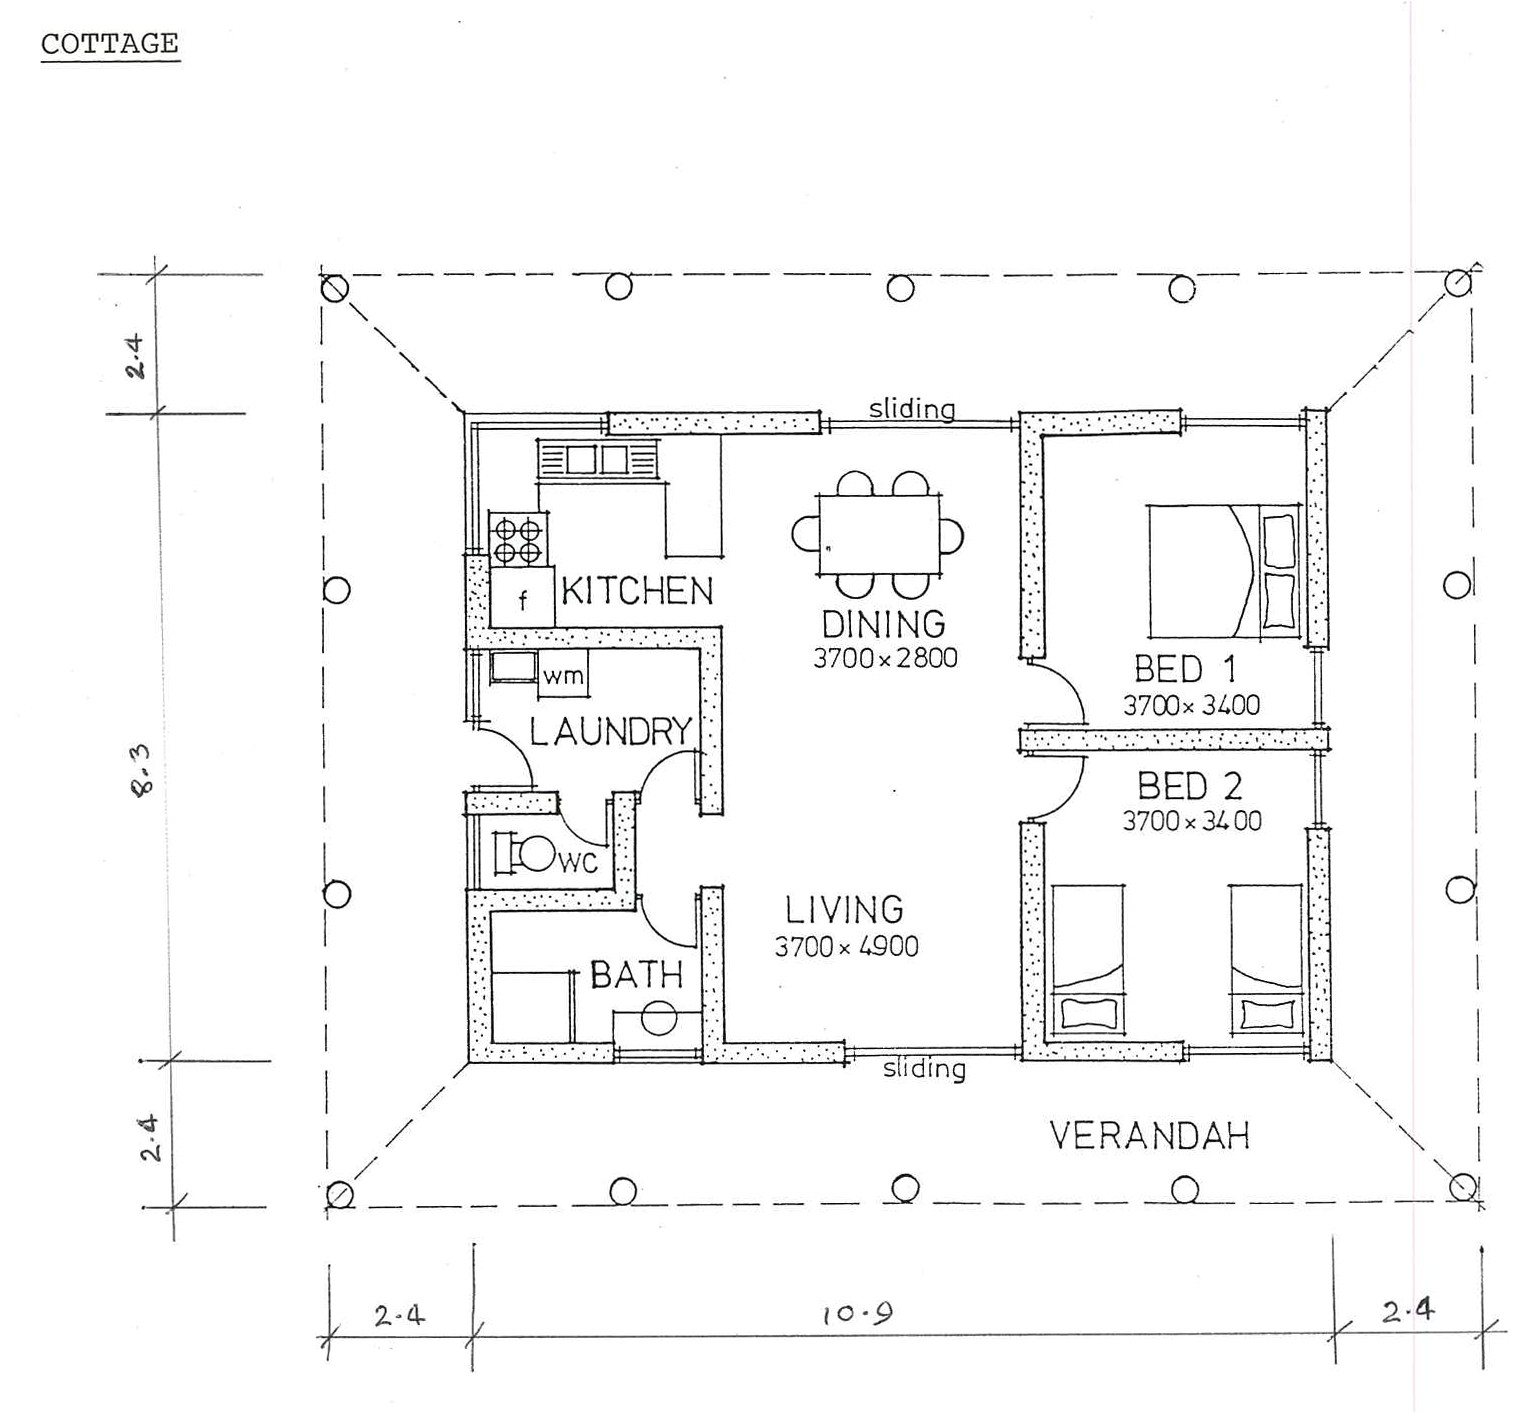 scale drawings house plans